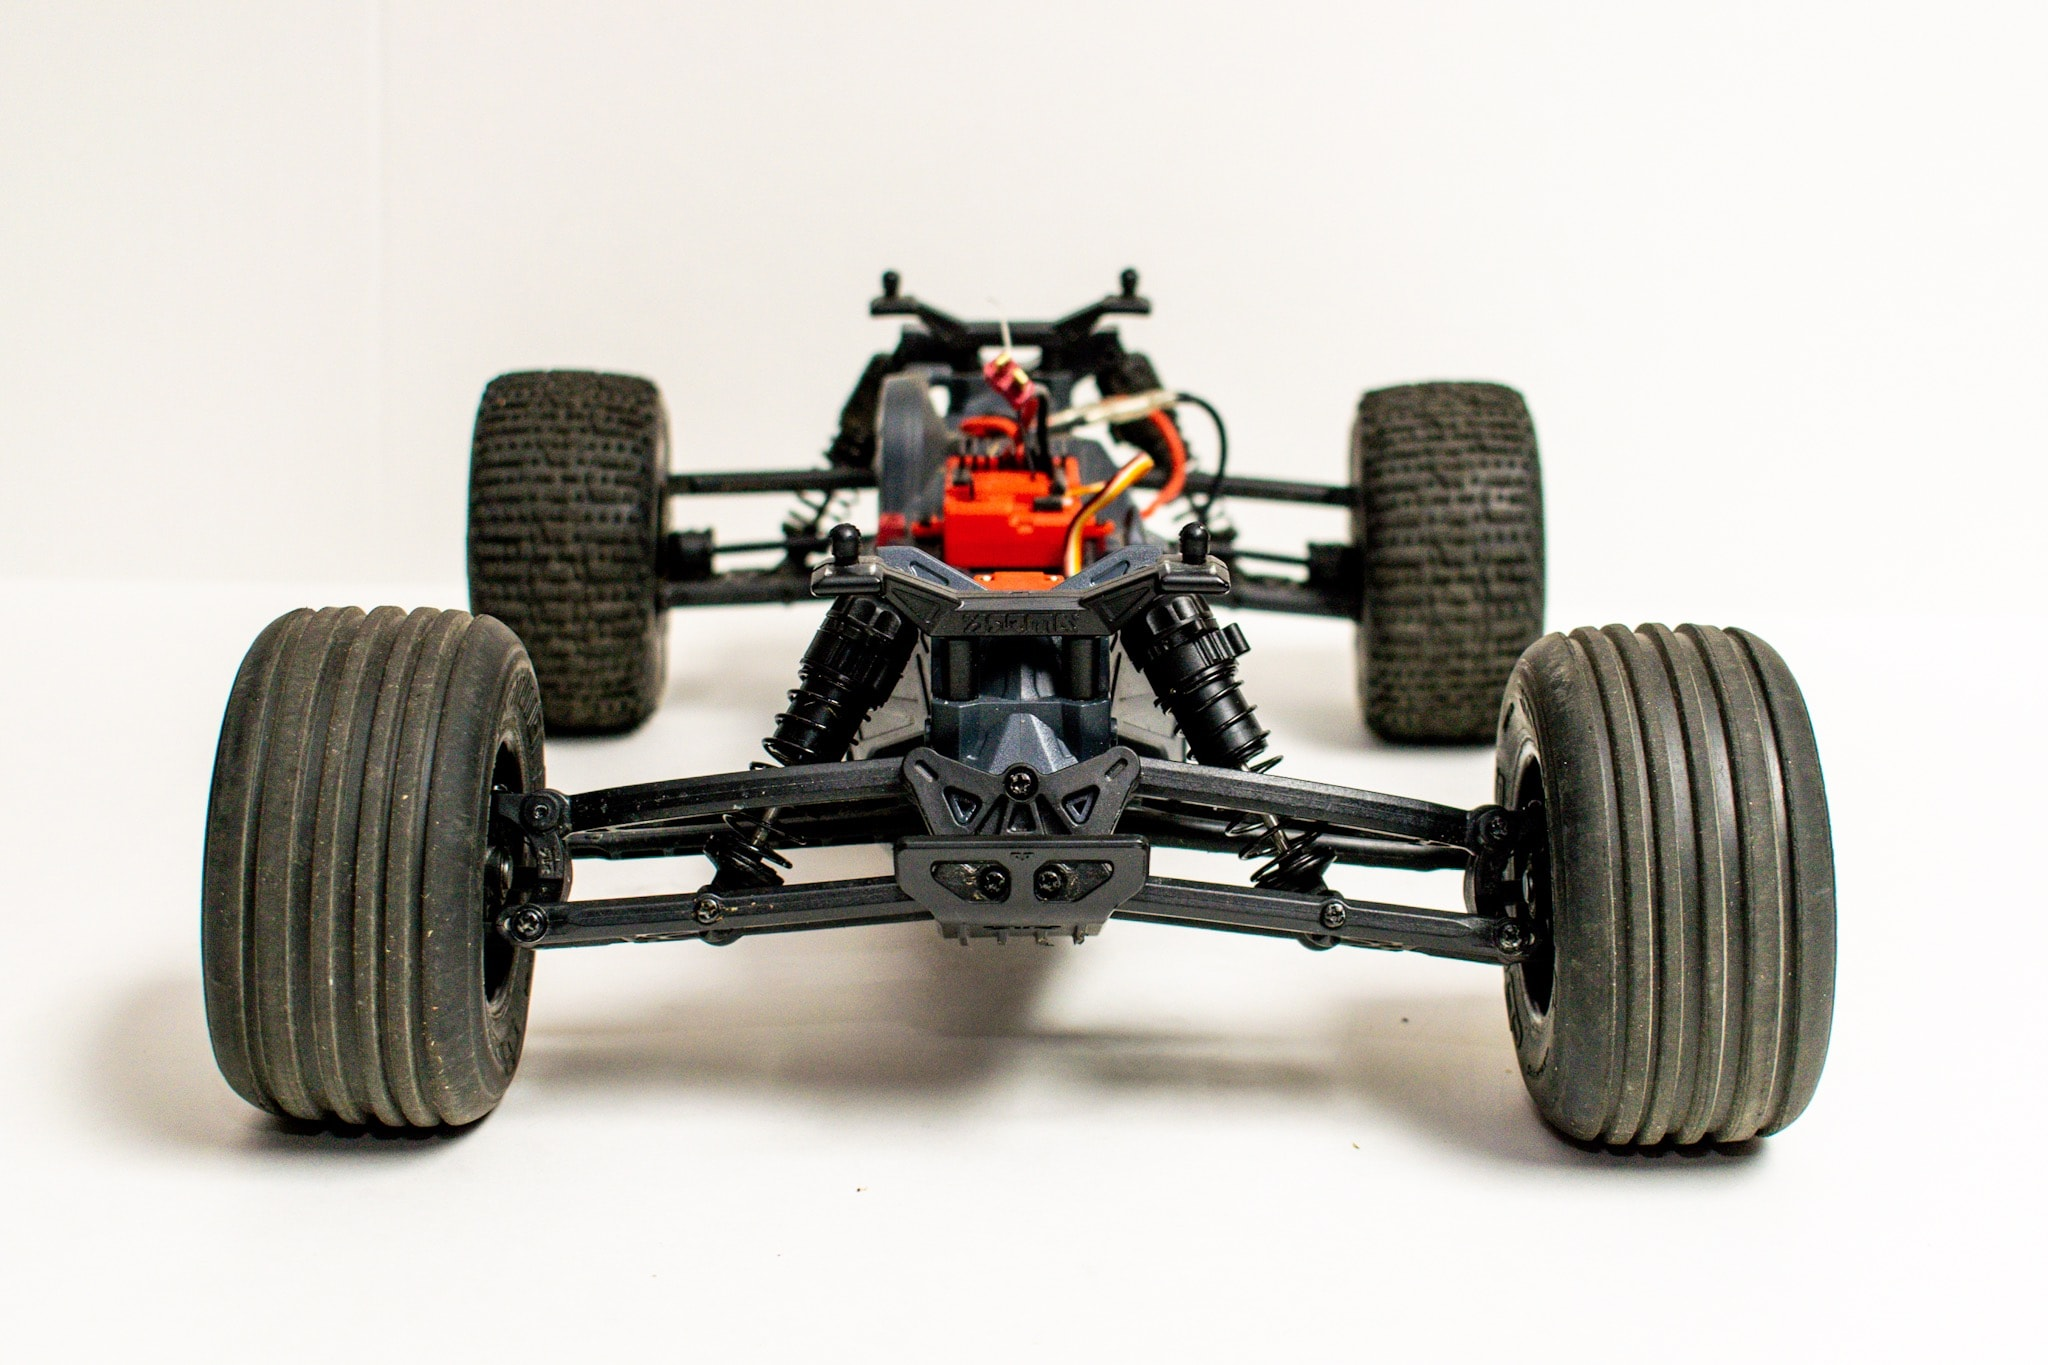 ARMA Fazon Voltage Studio - Chassis Front